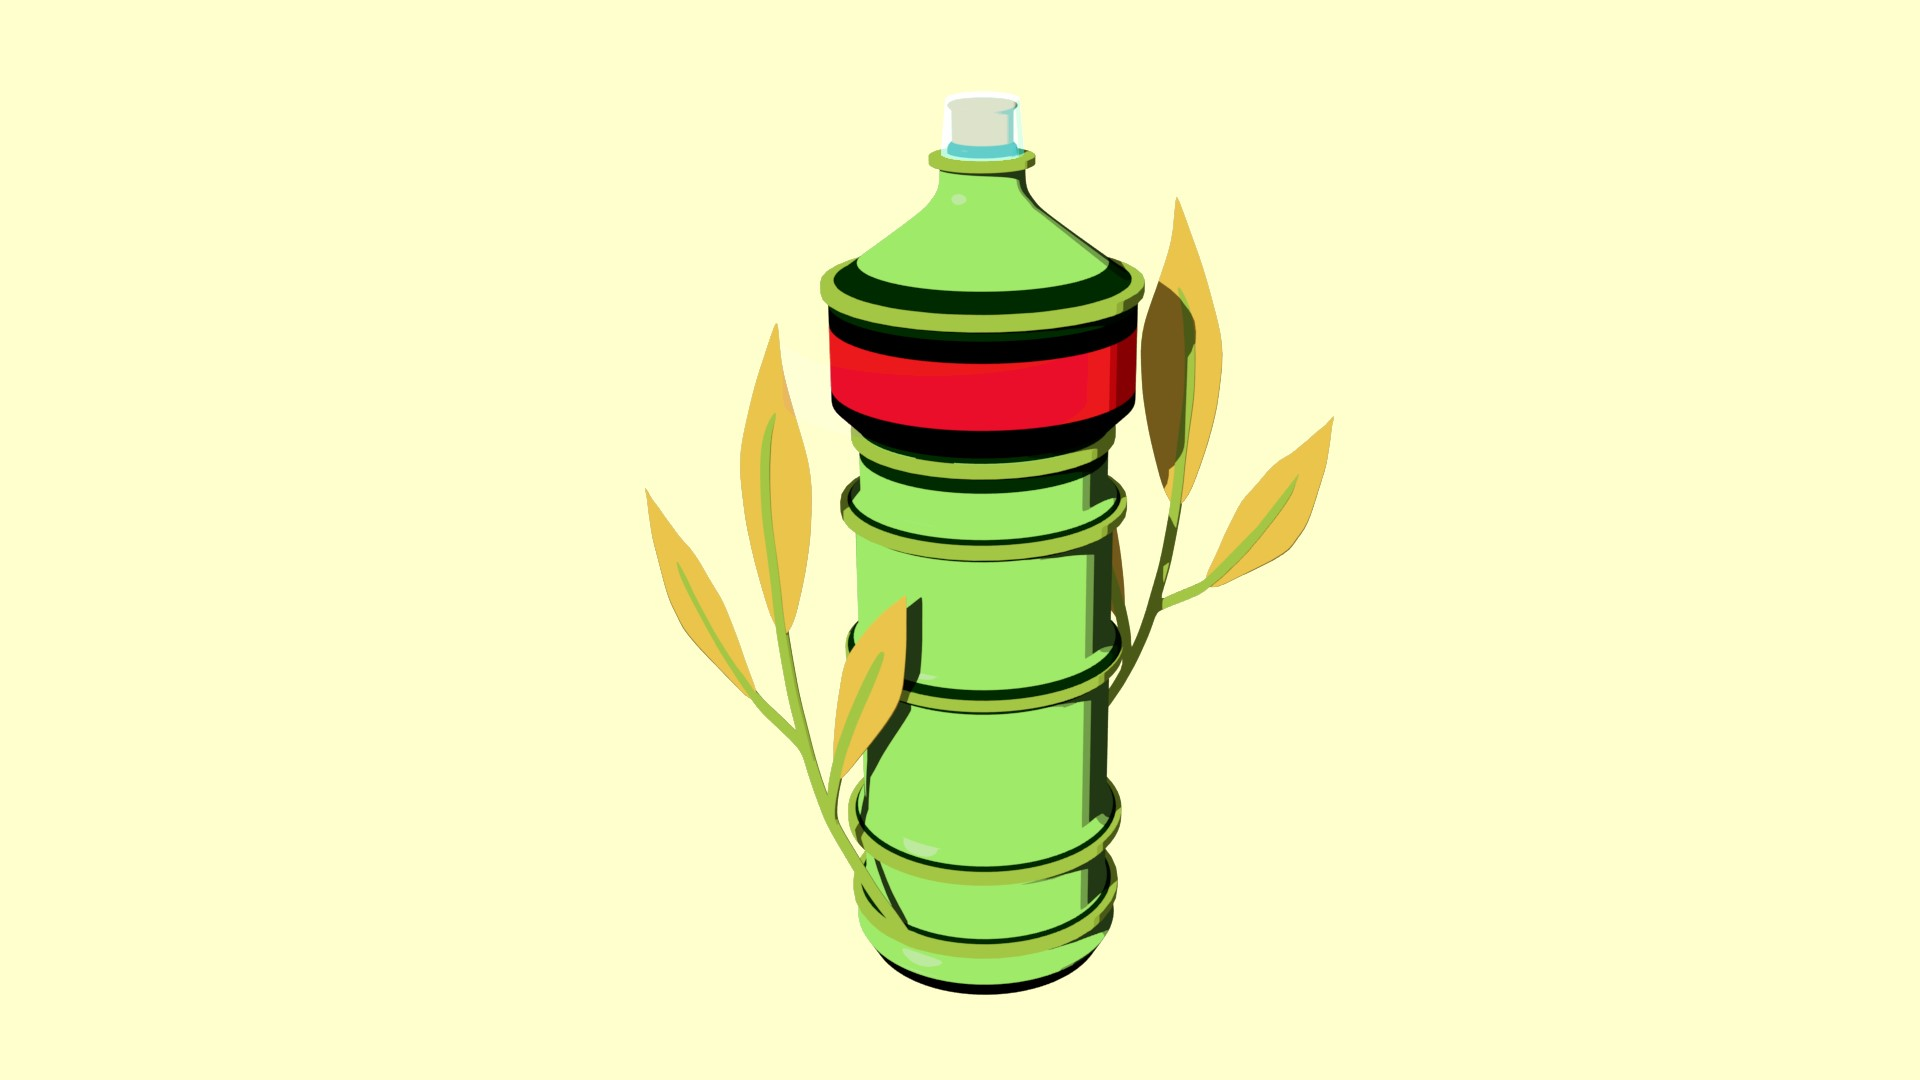 A green bottle with a red and black stripe on a yellow background. It is decorated with two large leaves coming out of the base.